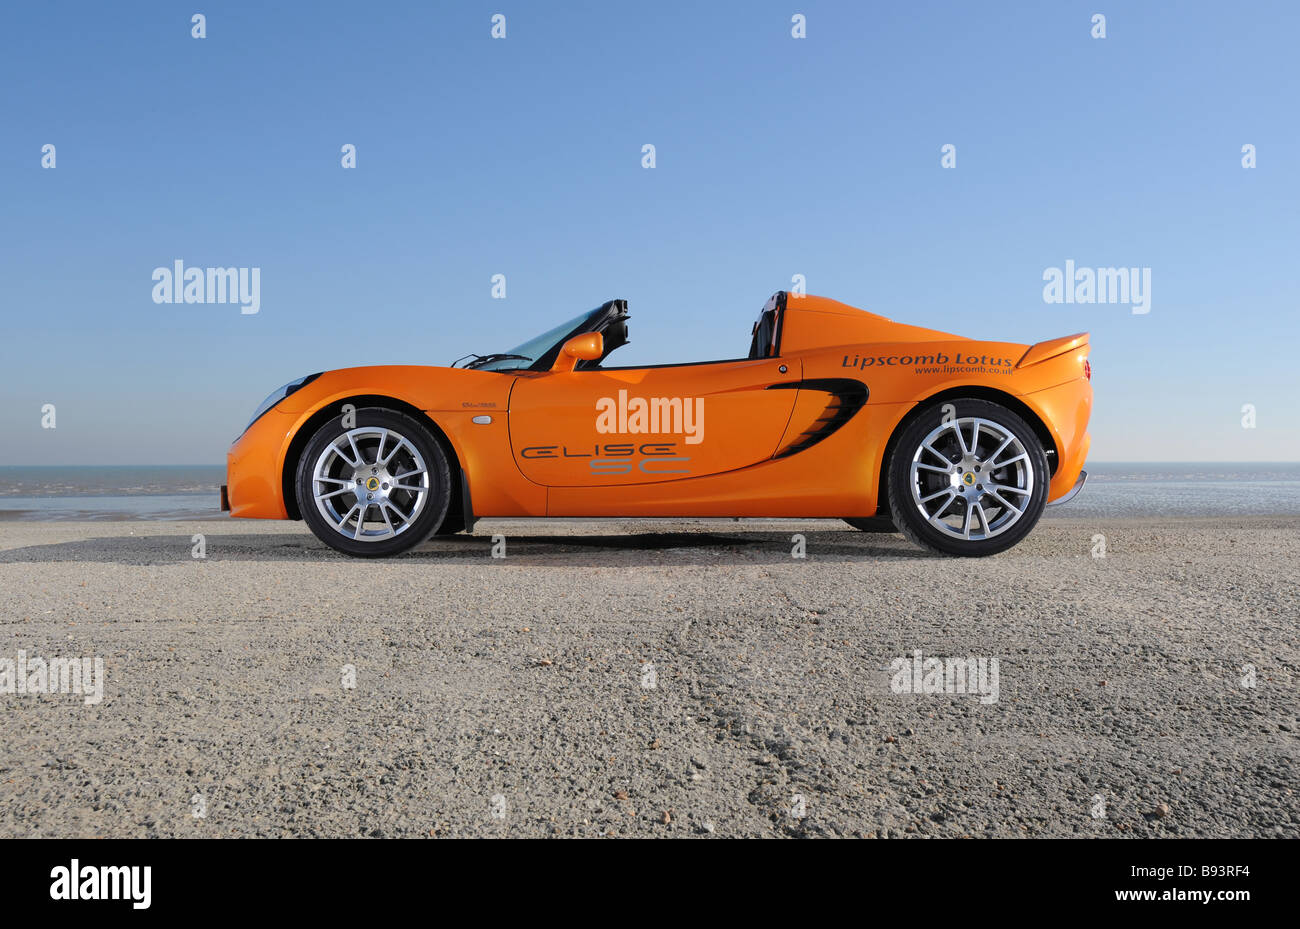 lotus elise sc supercharged mid engine sports car stock photo 22826584 alamy. Black Bedroom Furniture Sets. Home Design Ideas